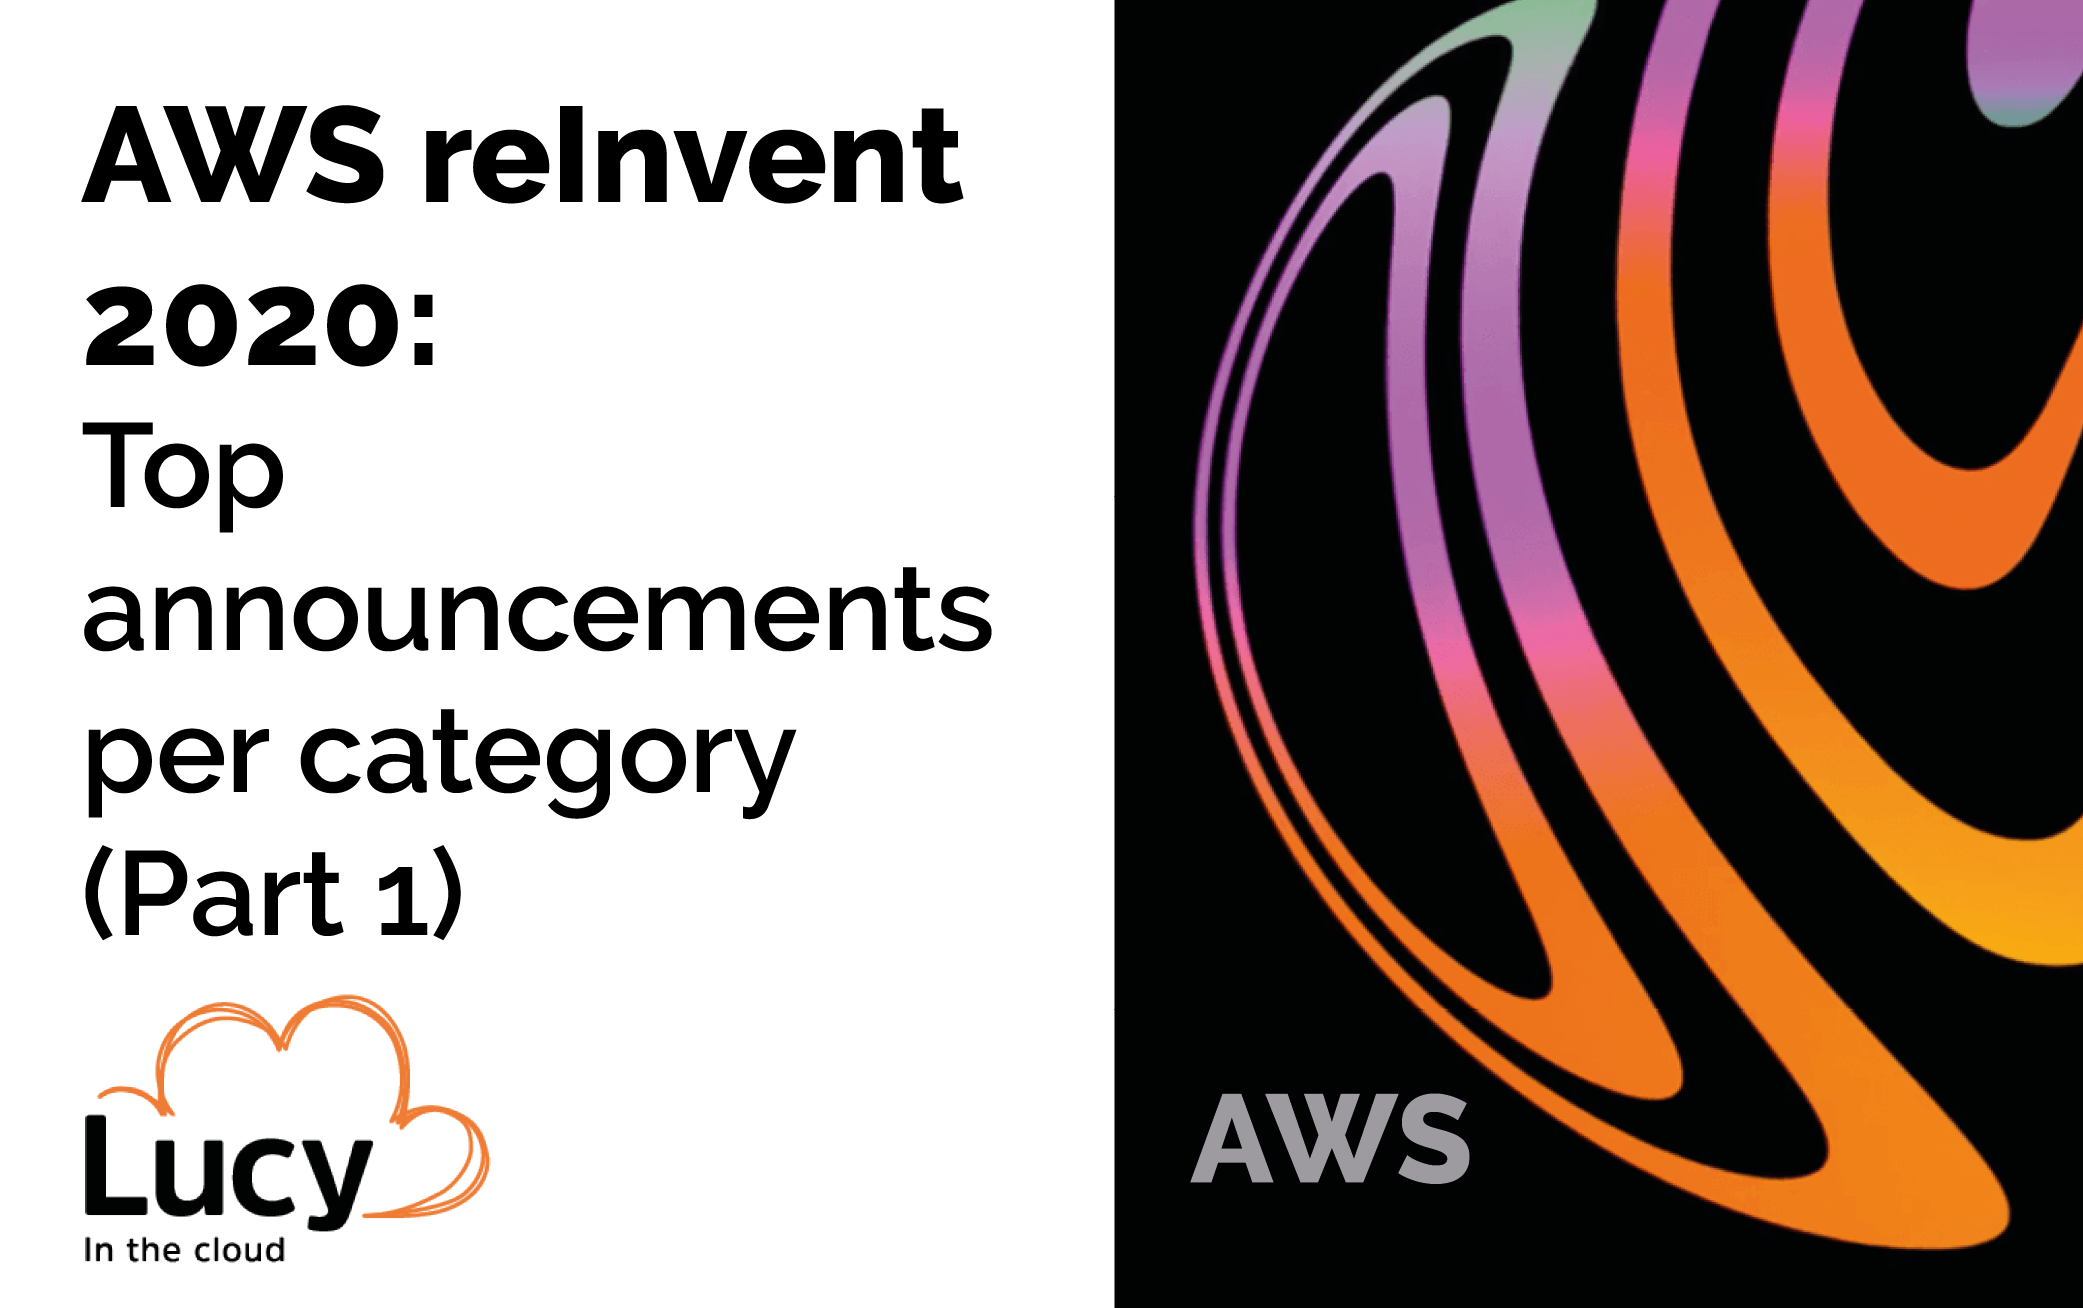 AWS reInvent 2020 top announcements part 1